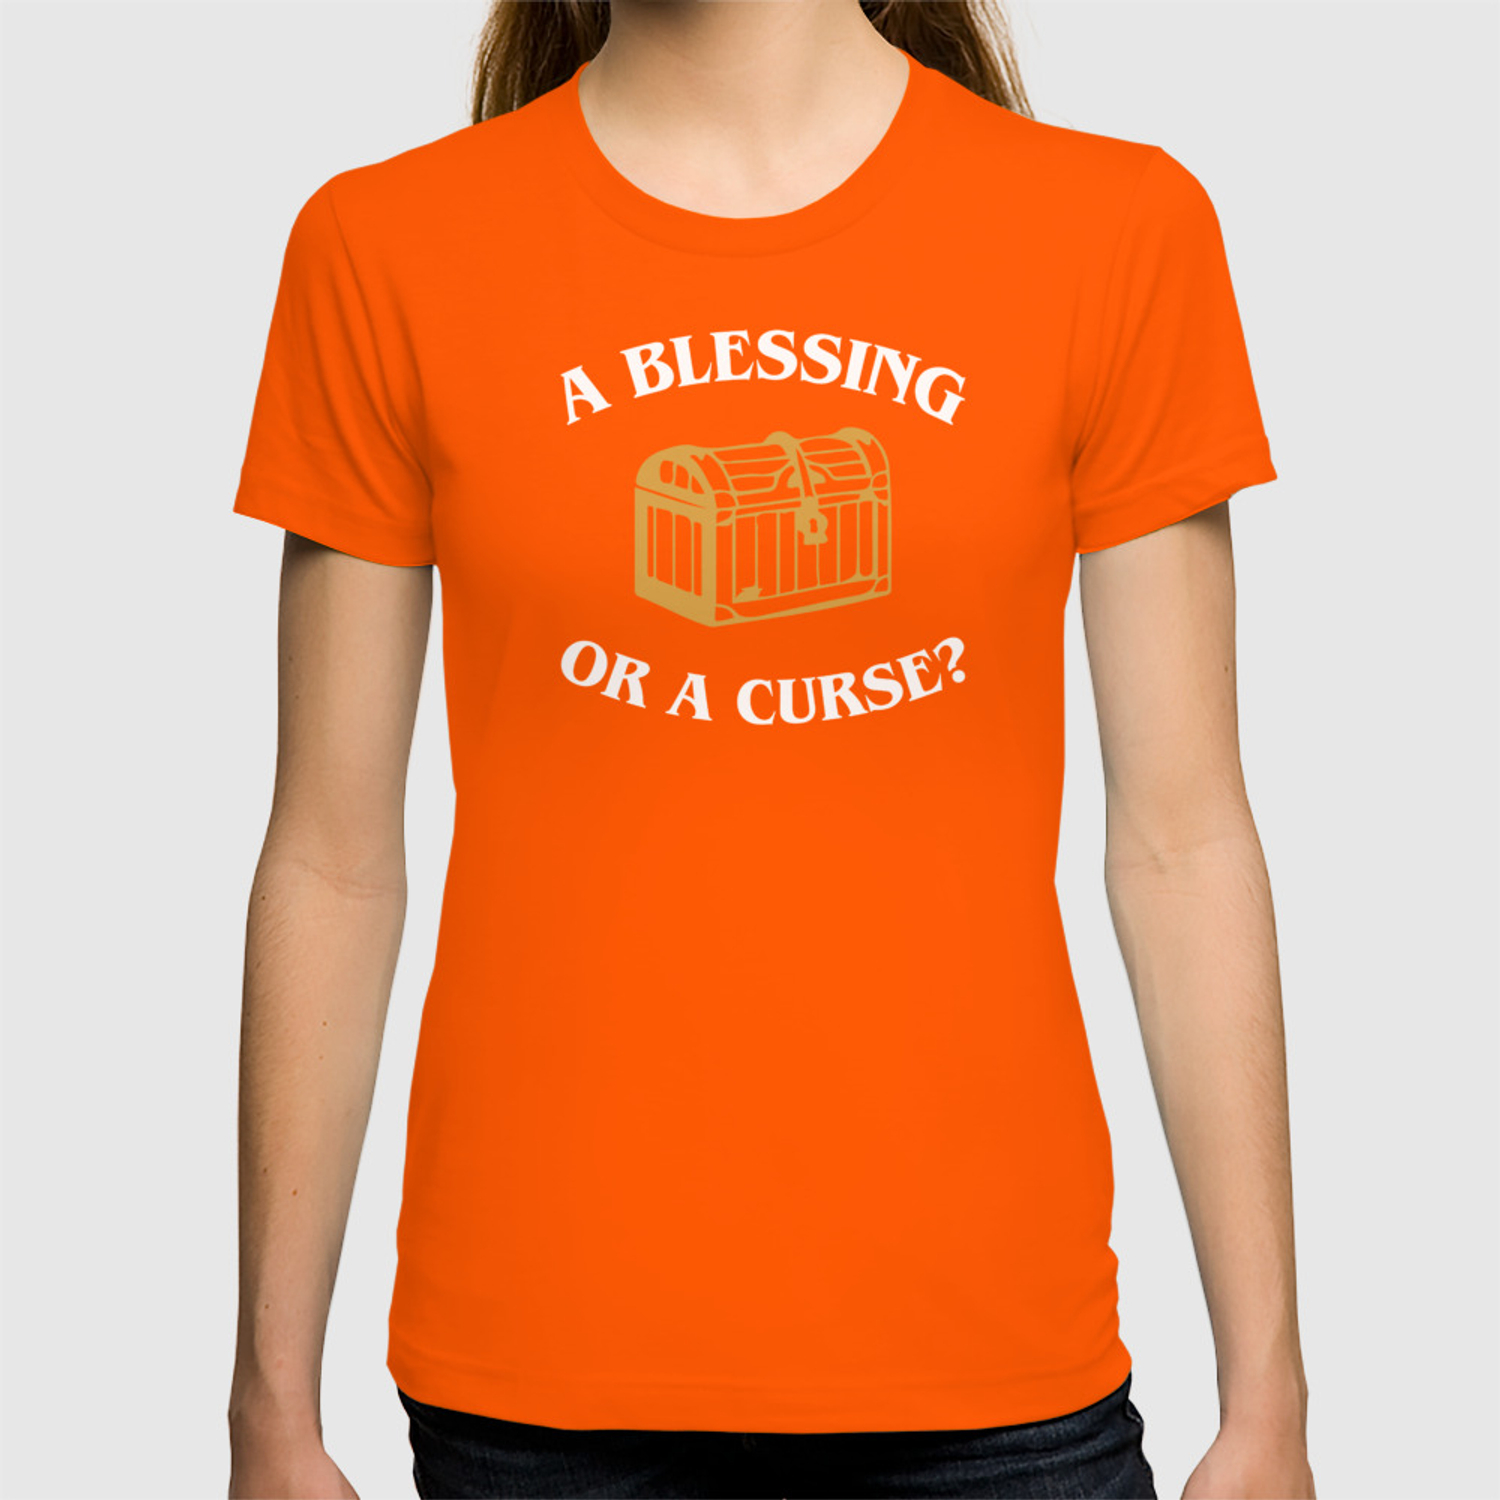 DnD Blessing or Curse Dungeons and Dragons Inspired Tabletop RPG Gaming  T-shirt